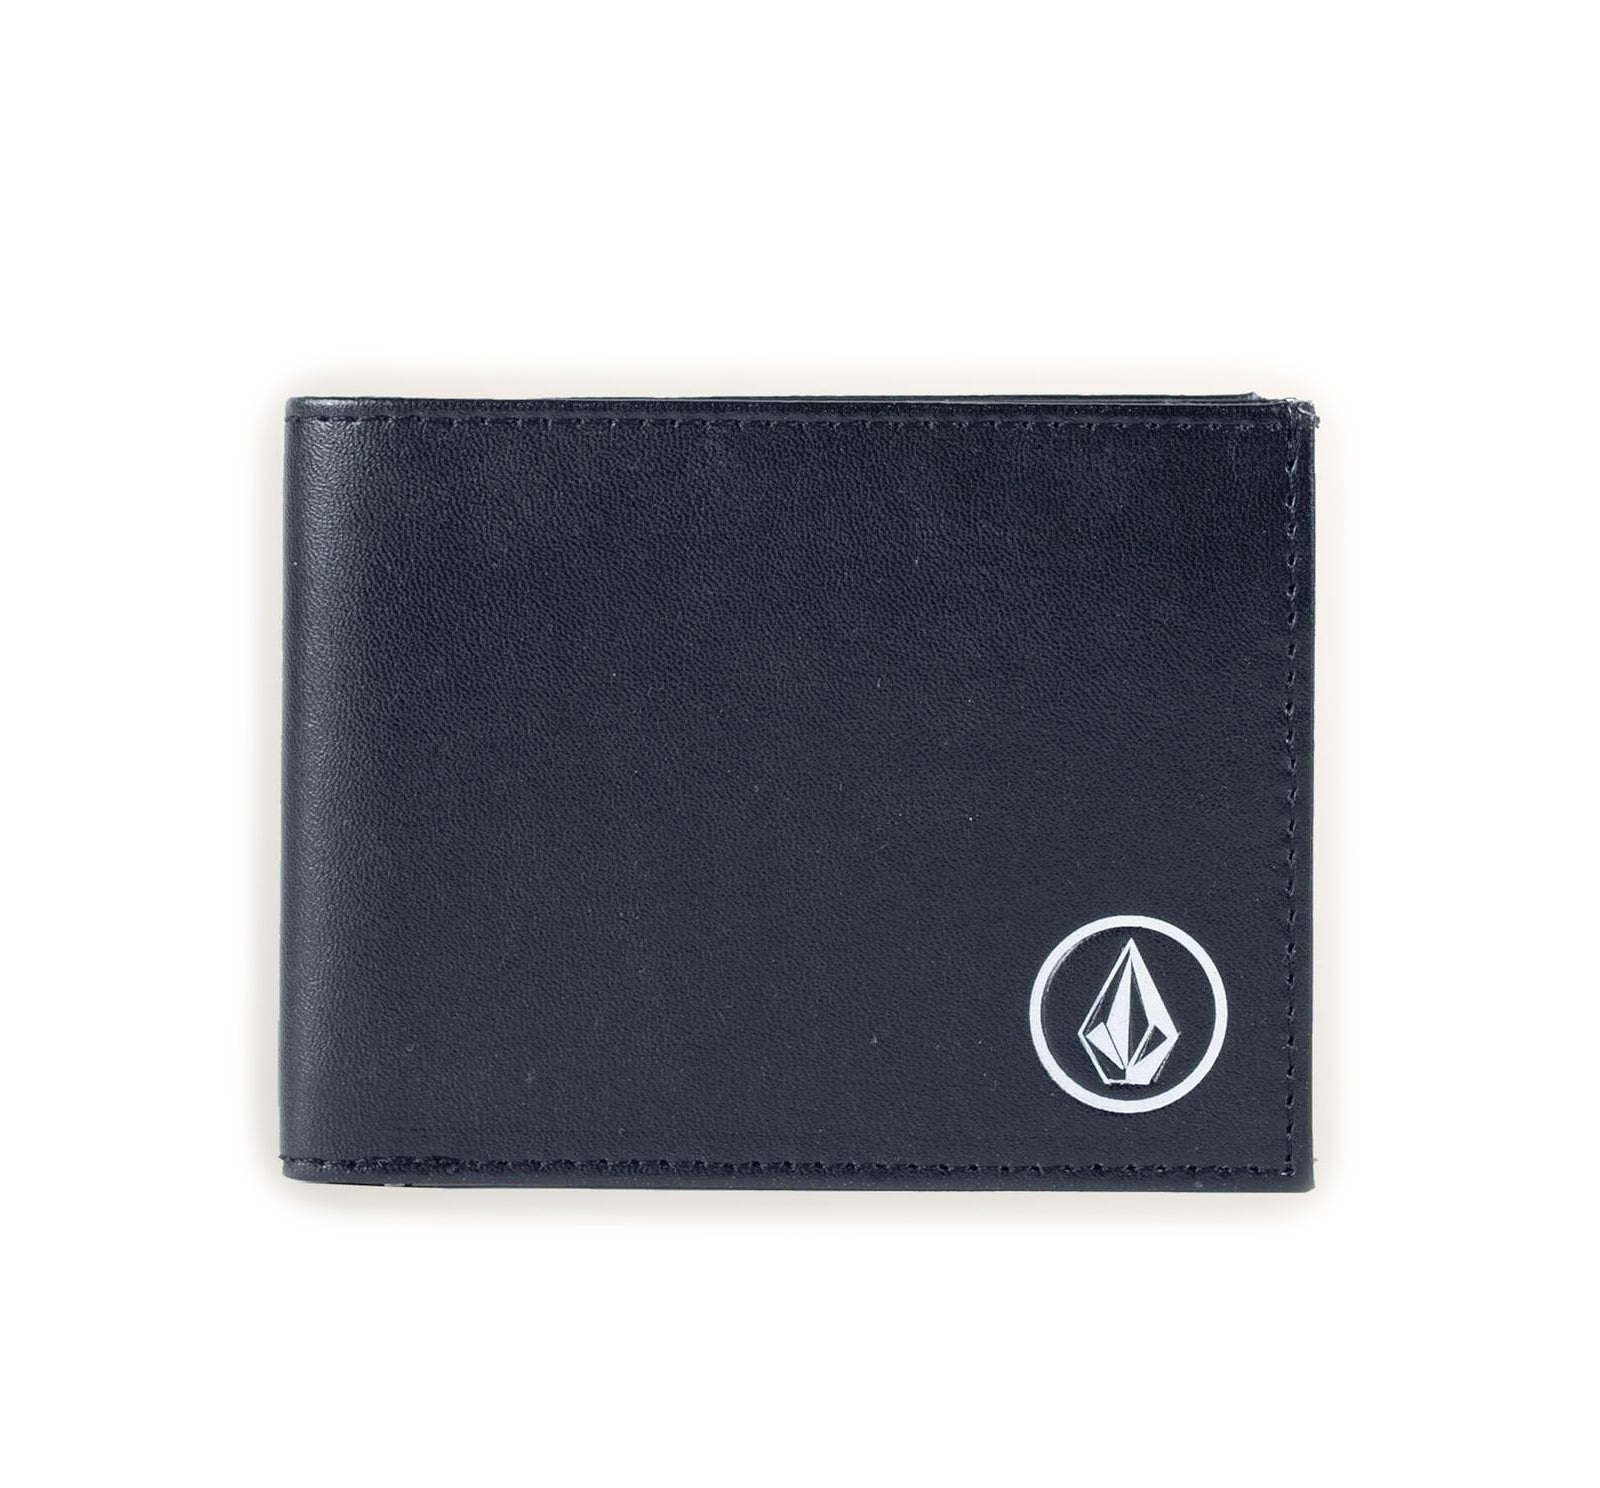 Volcom Corps Men's Wallet - Black